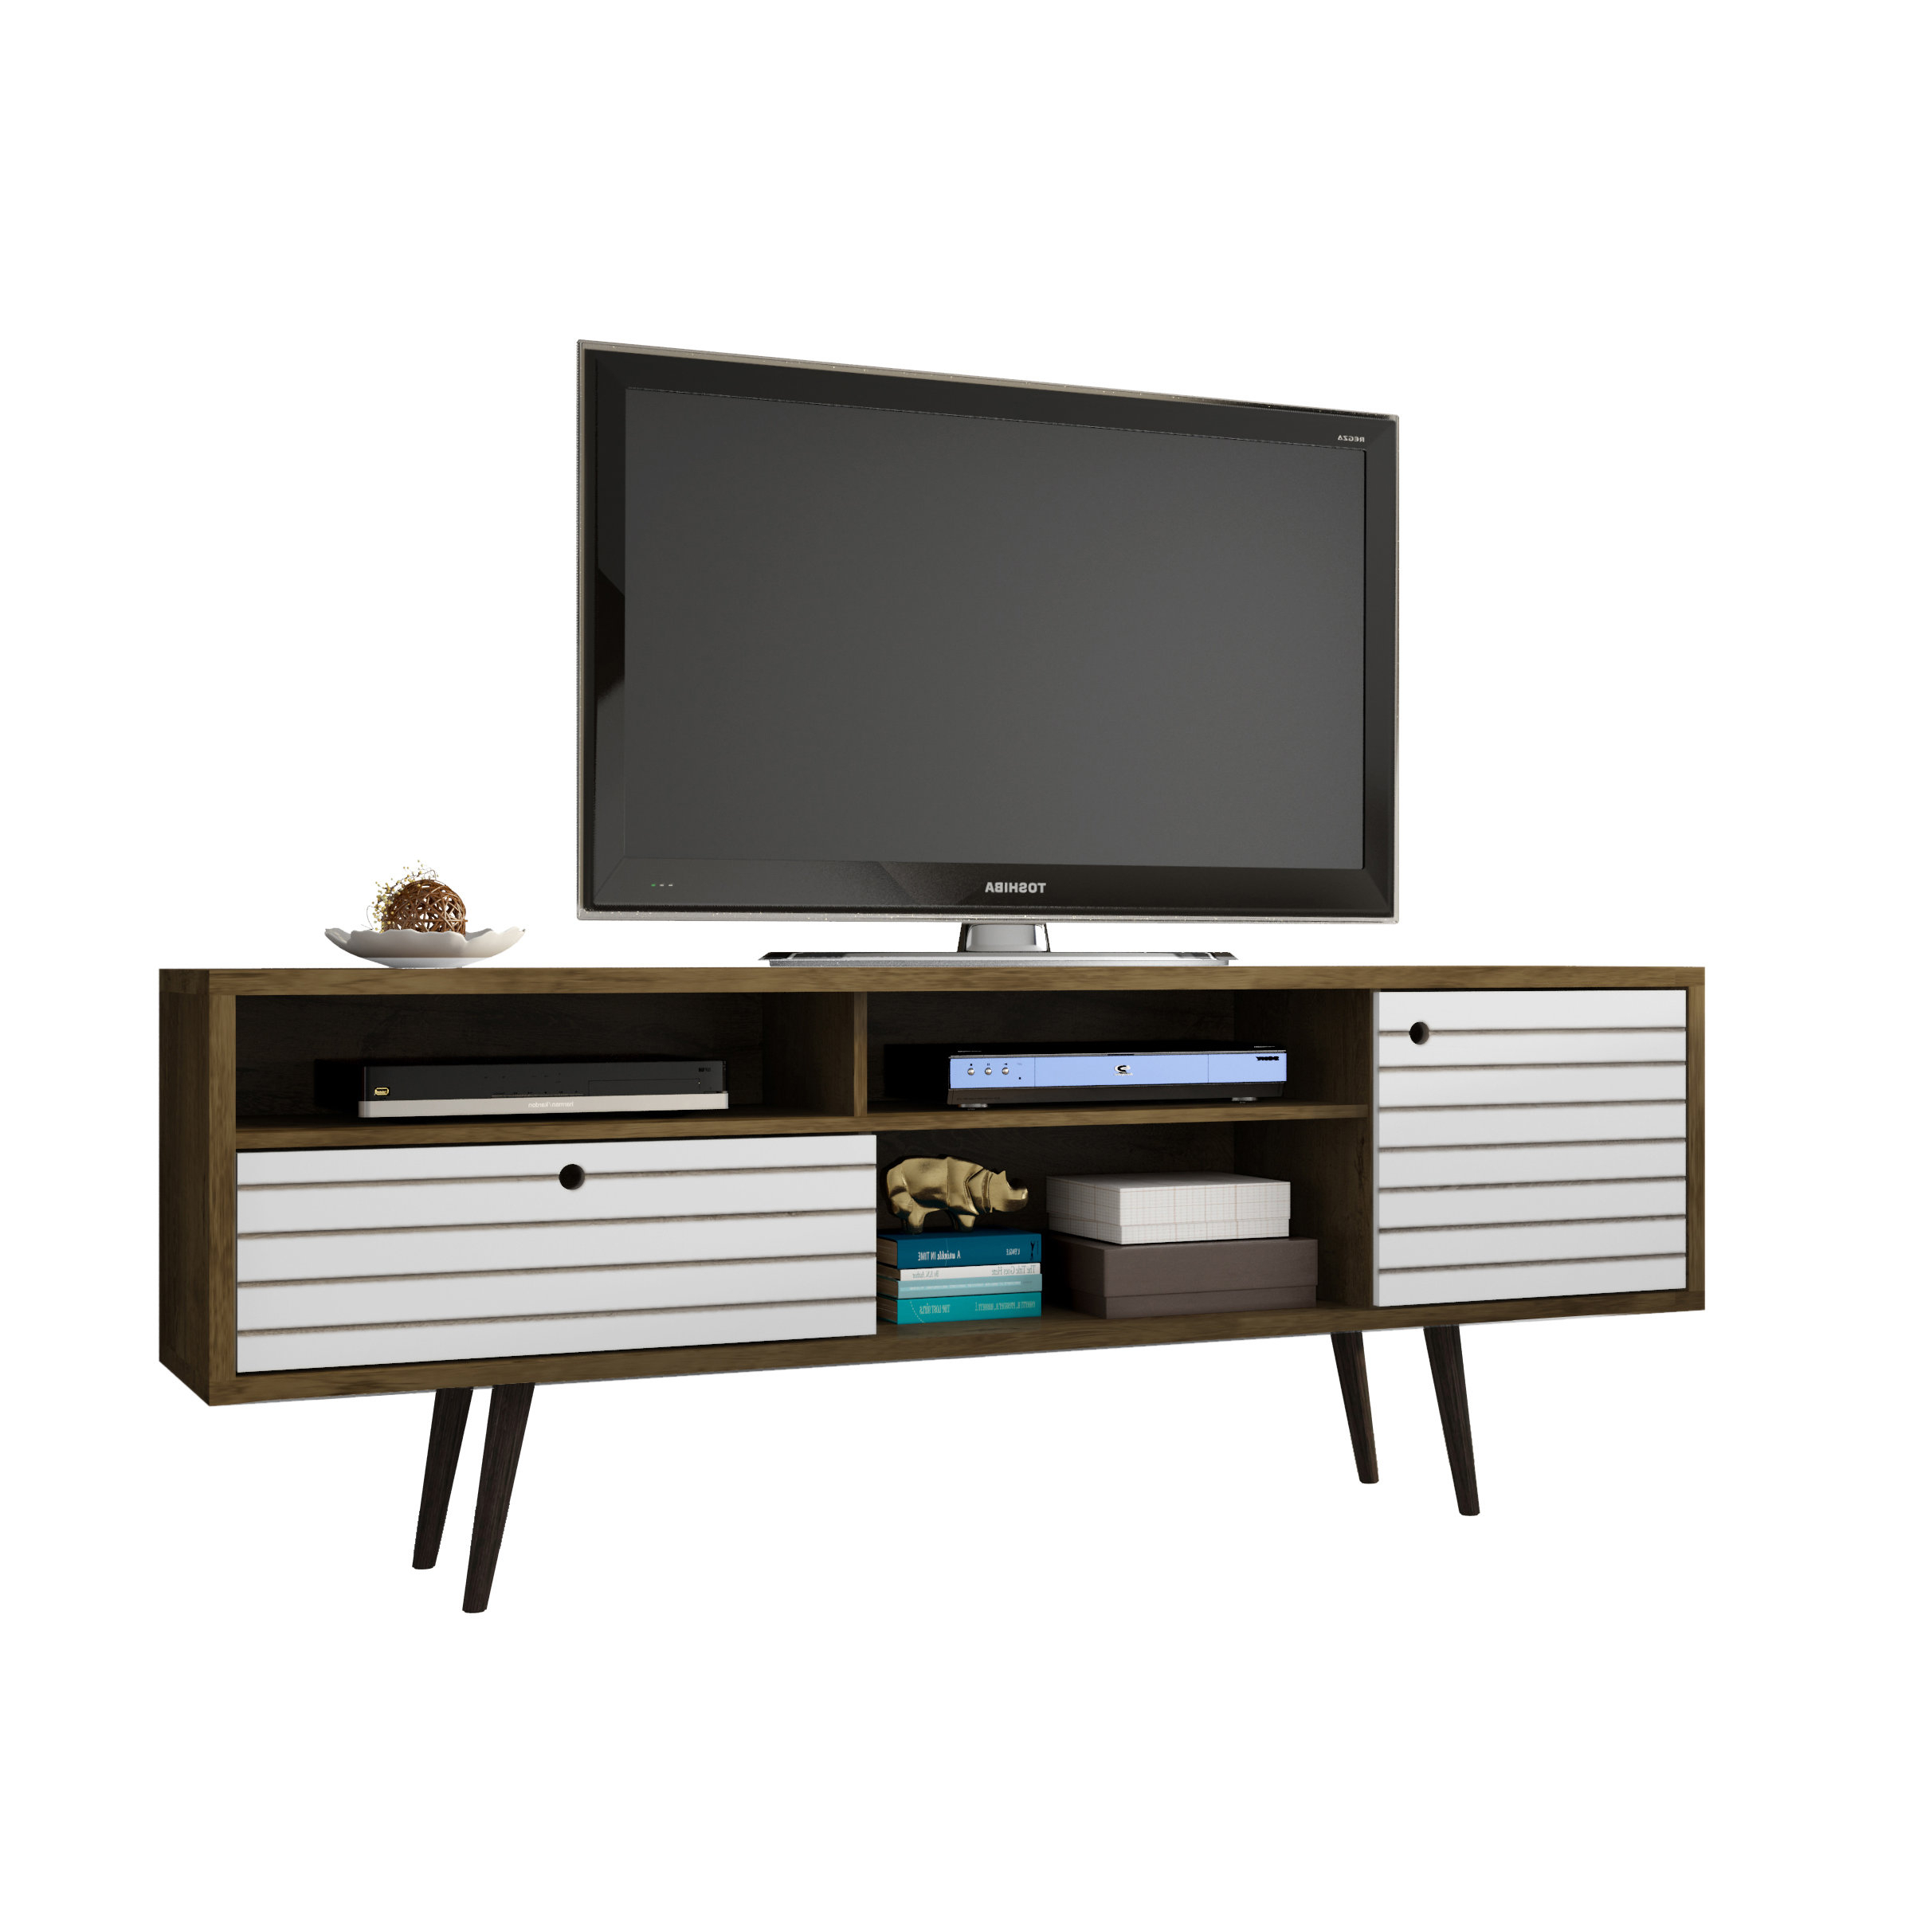 Unique Tv Stands For Flat Screens Inside Well Known Modern Tv Stands & Entertainment Centers (Gallery 6 of 20)